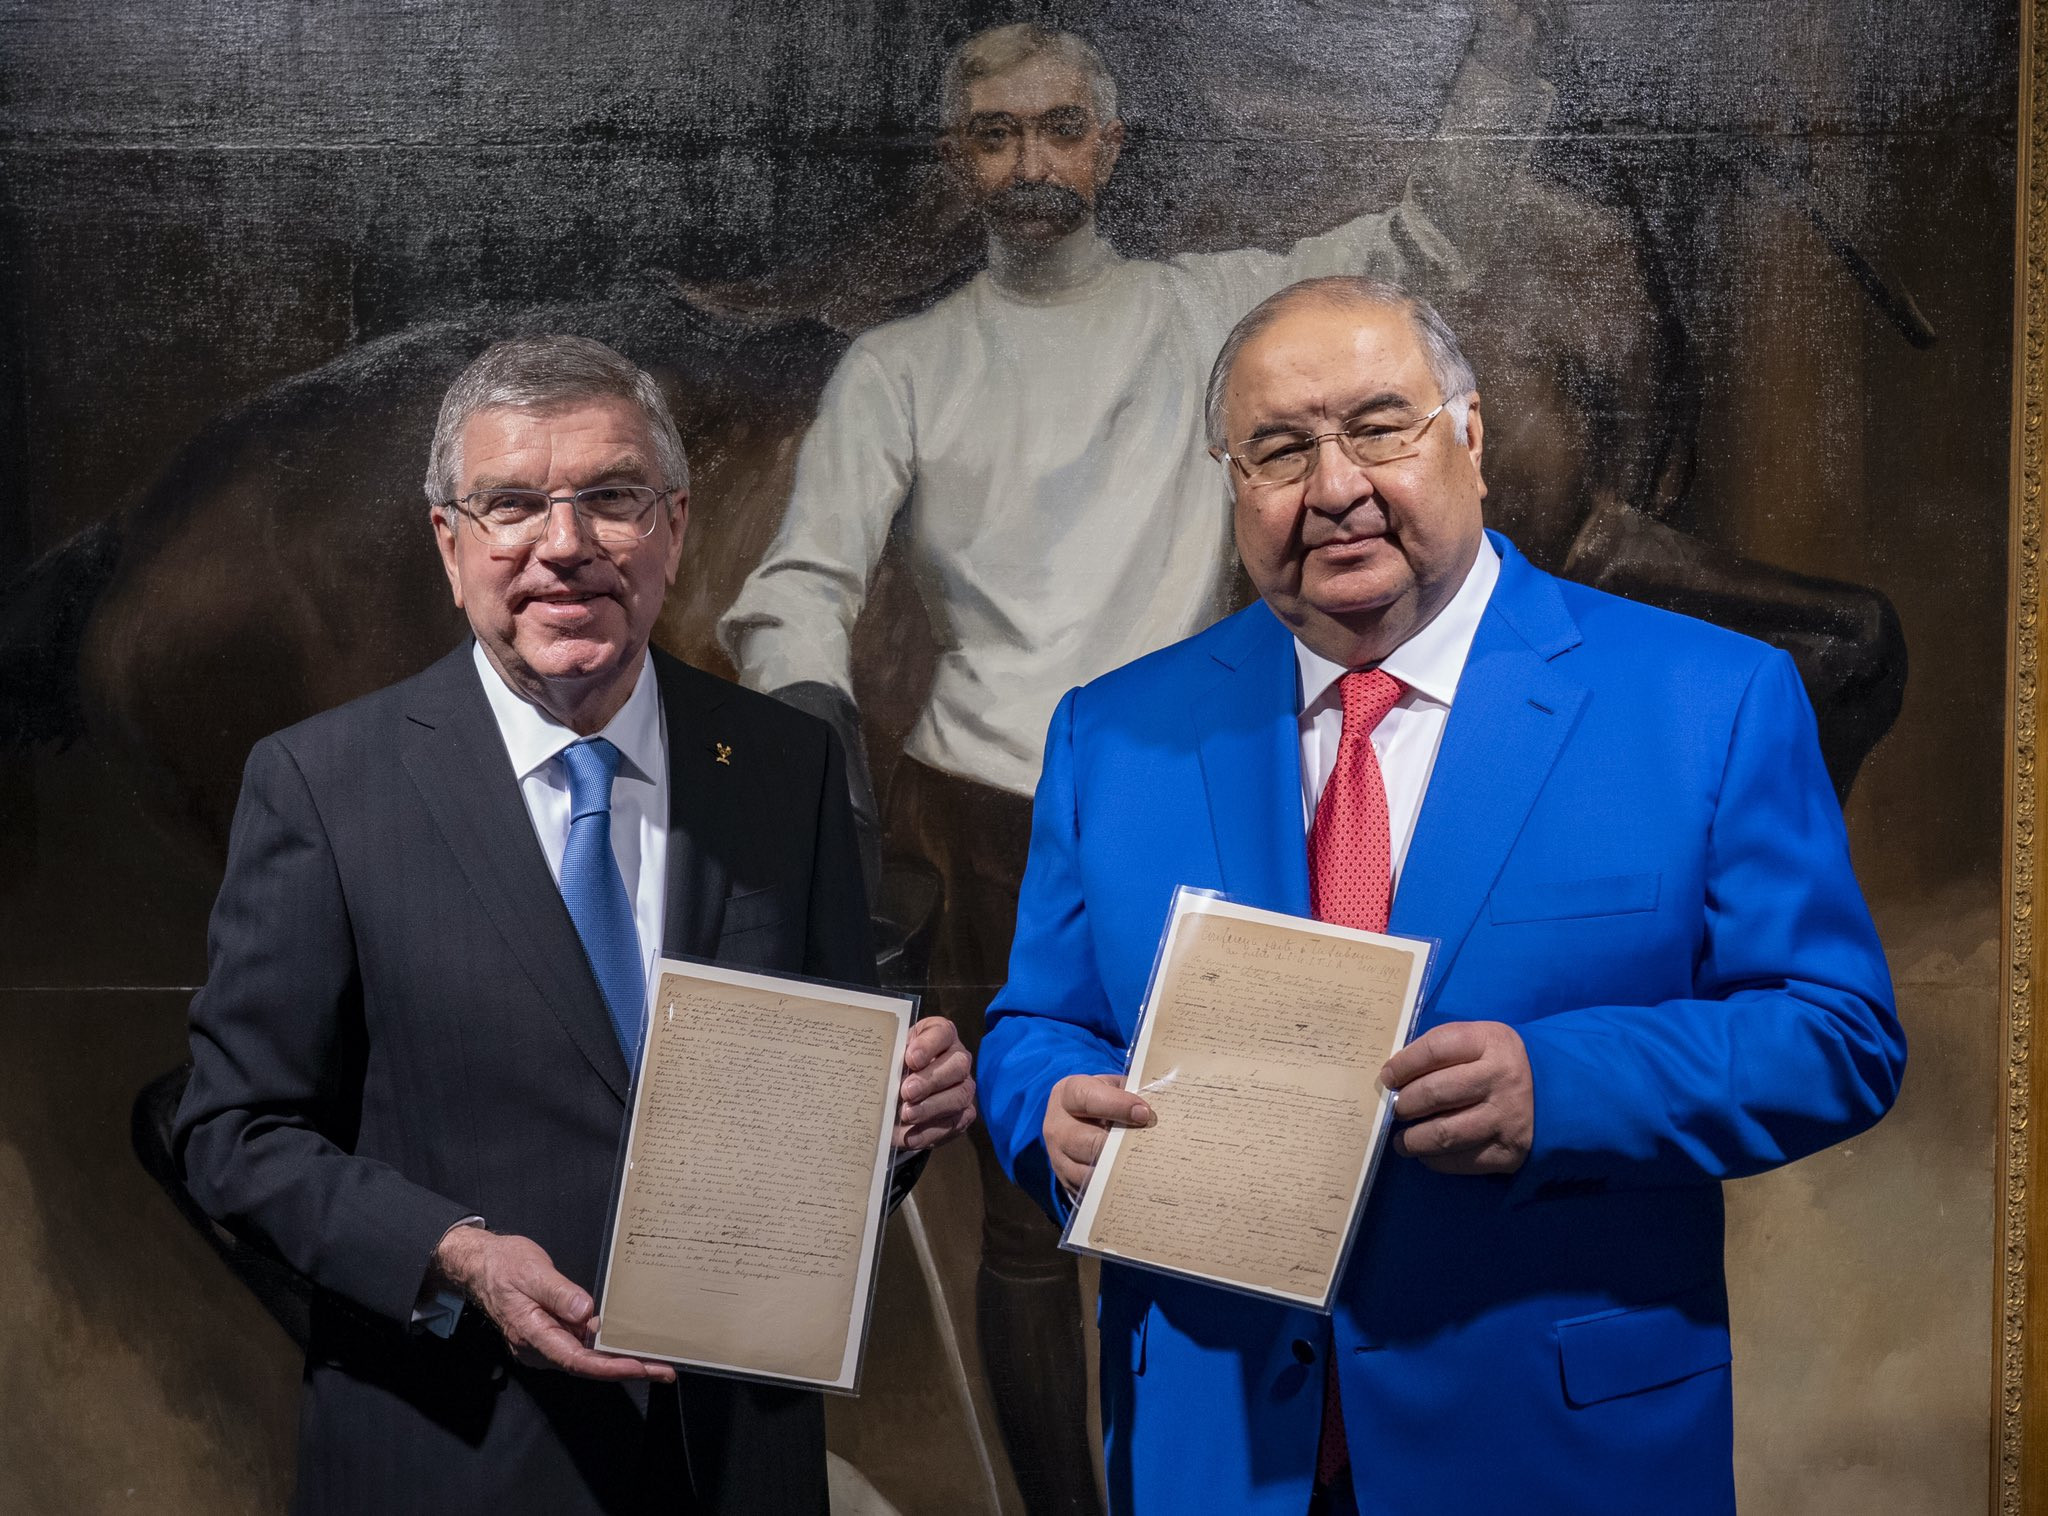 Thomas Bach, left, received the manuscript from Alisher Usmanov ©IOC